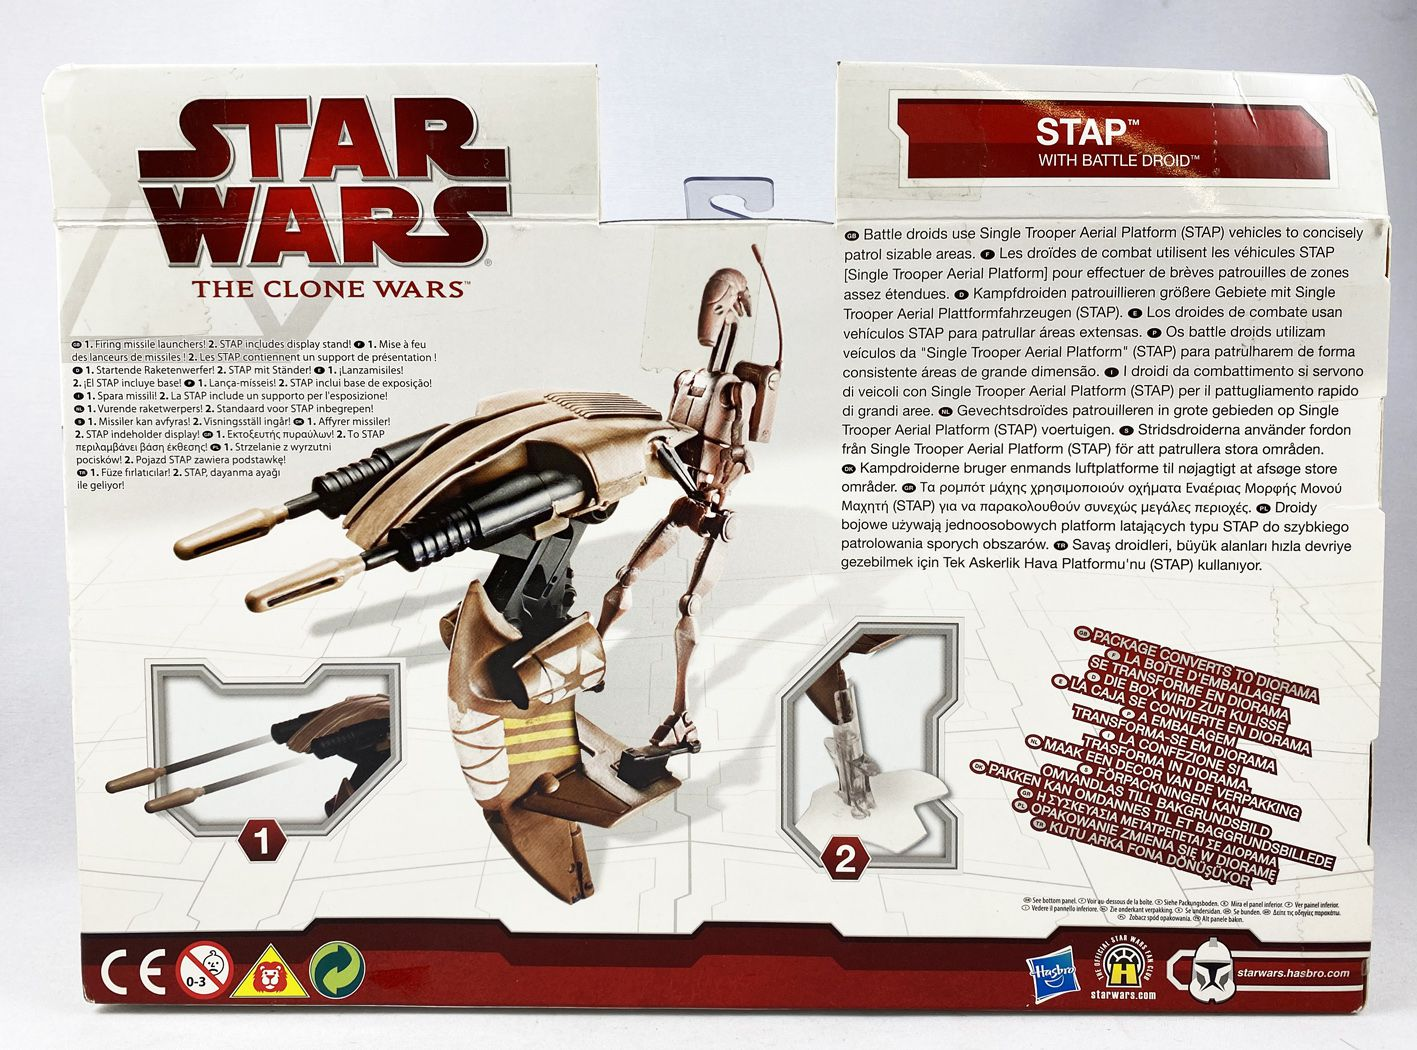 Star Wars (The Clone Wars) - Hasbro - STAP with Battle Droid